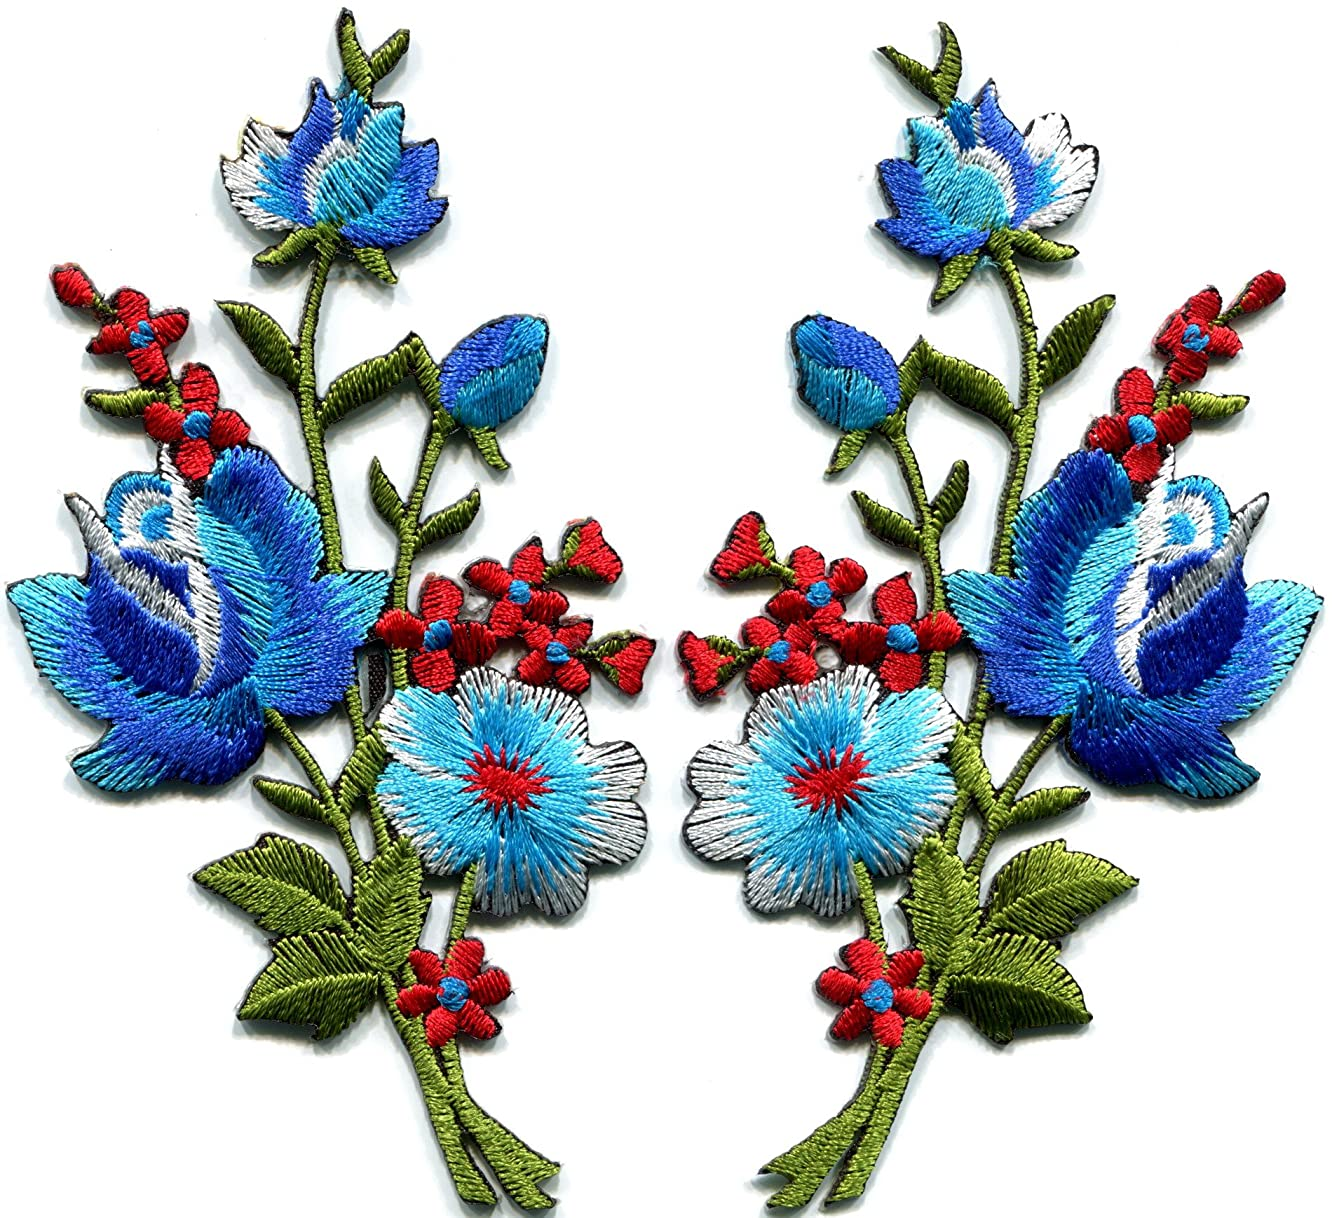 Blue roses pair flowers floral bouquet boho embroidered appliques iron-ons patches new